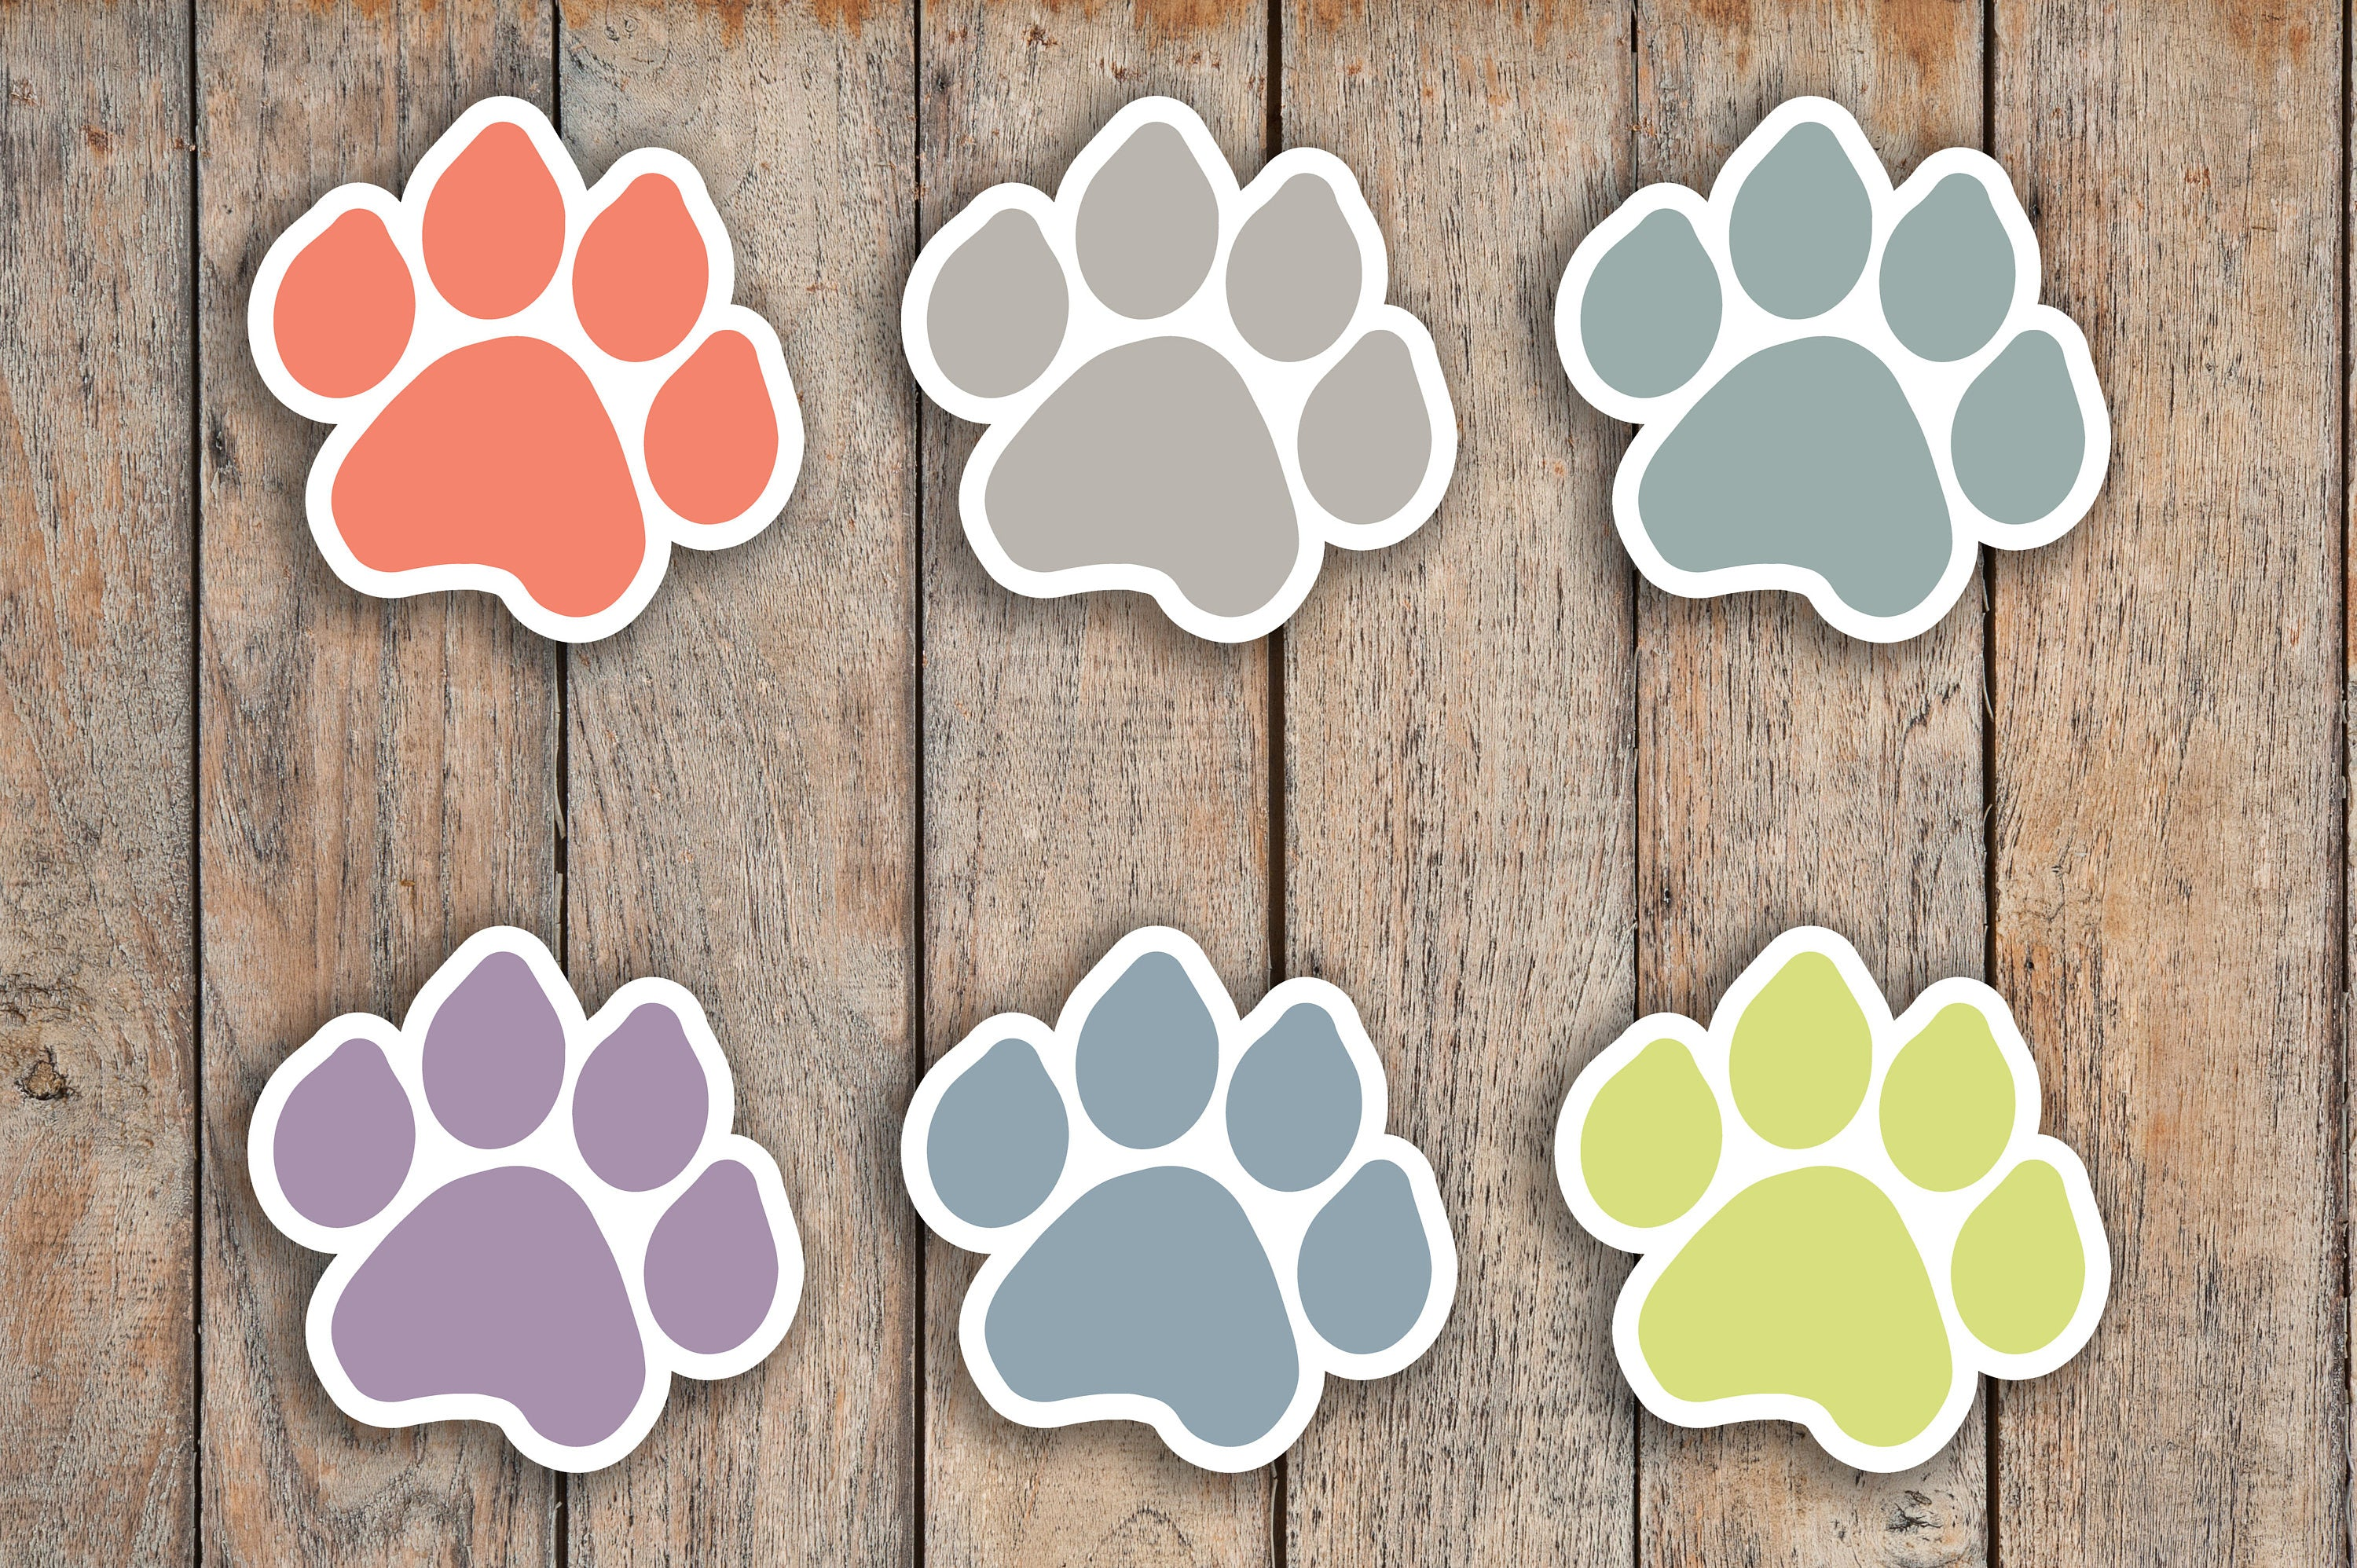 42 Paw, Pet, Dog, Cat, Animal Icon Stickers for 2018 inkWELL Press Planners IWP-Q33